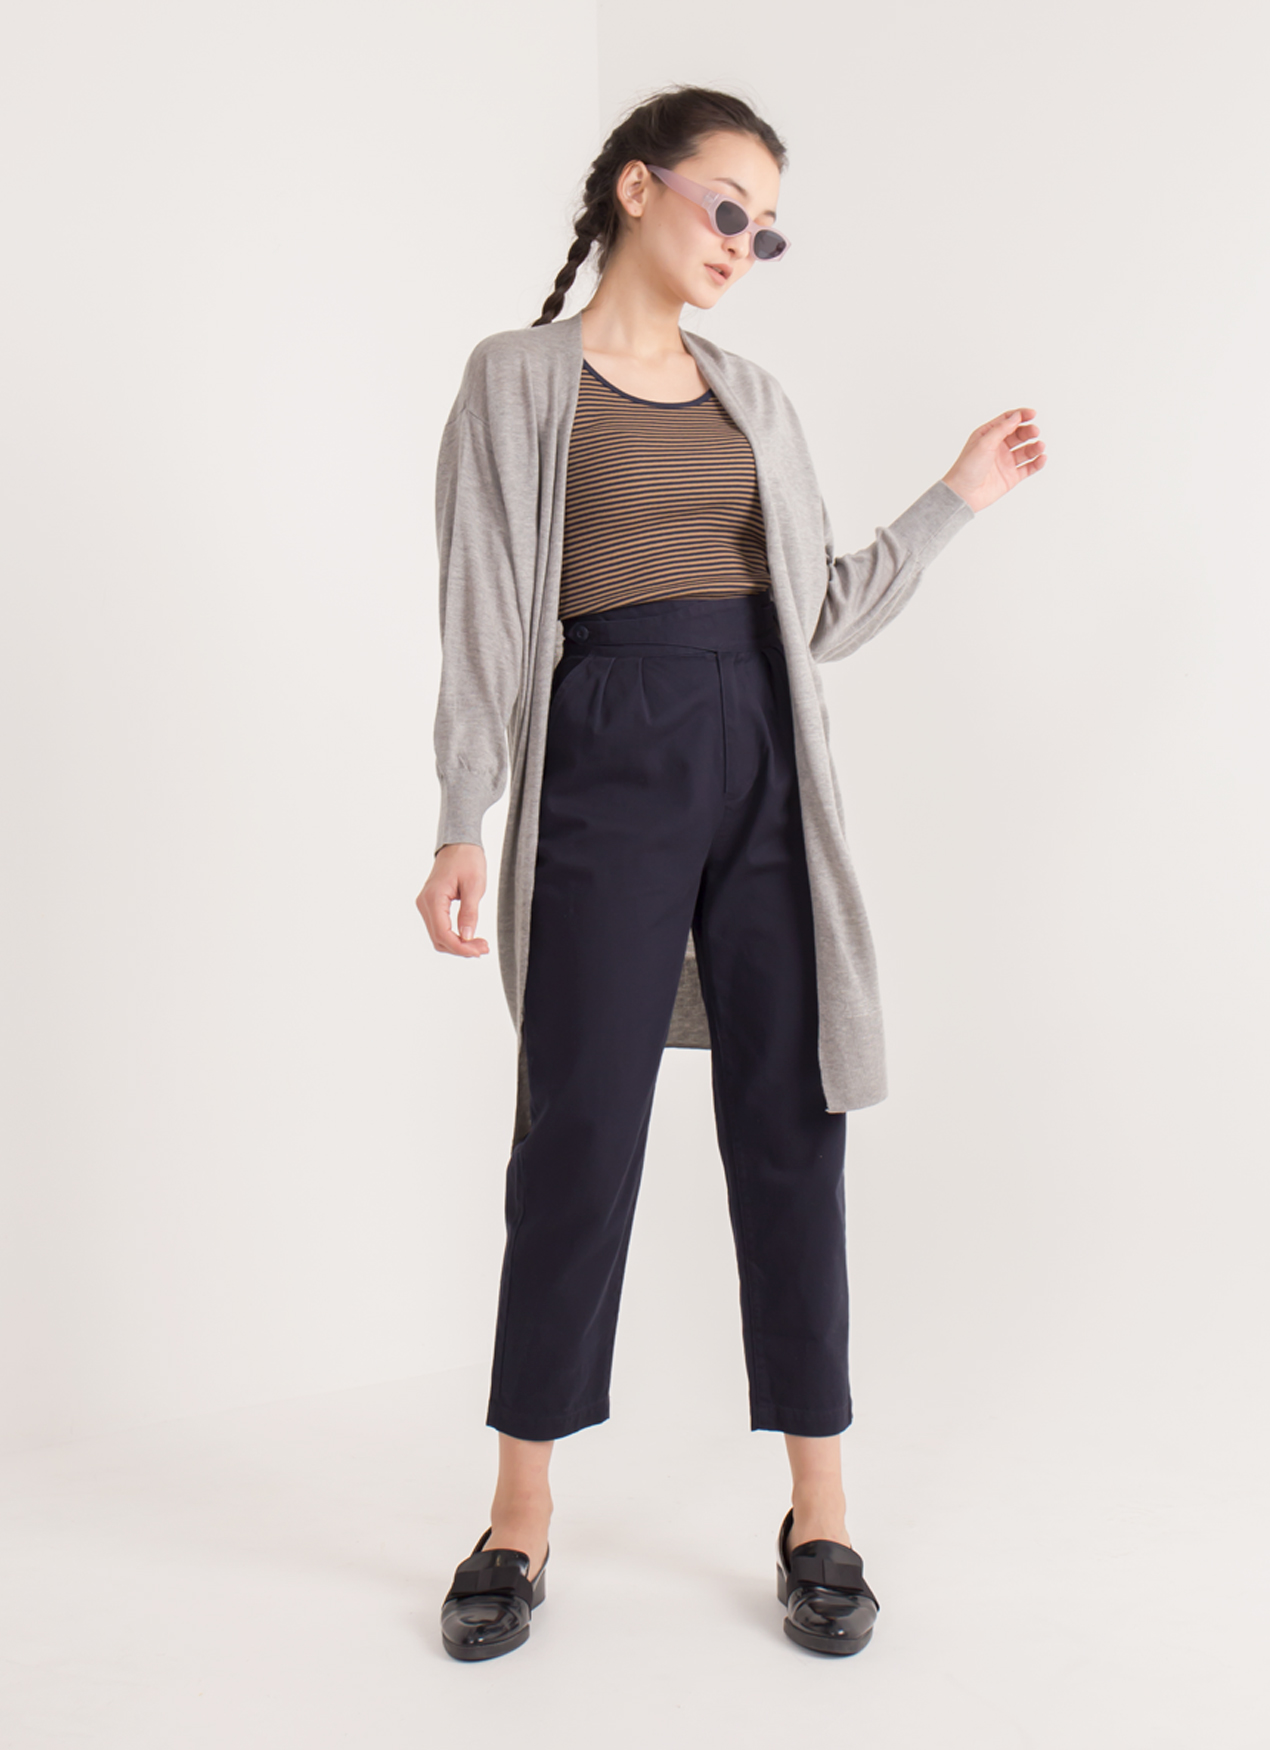 Earth, Music & Ecology Vina Cardigan - Gray Mixture